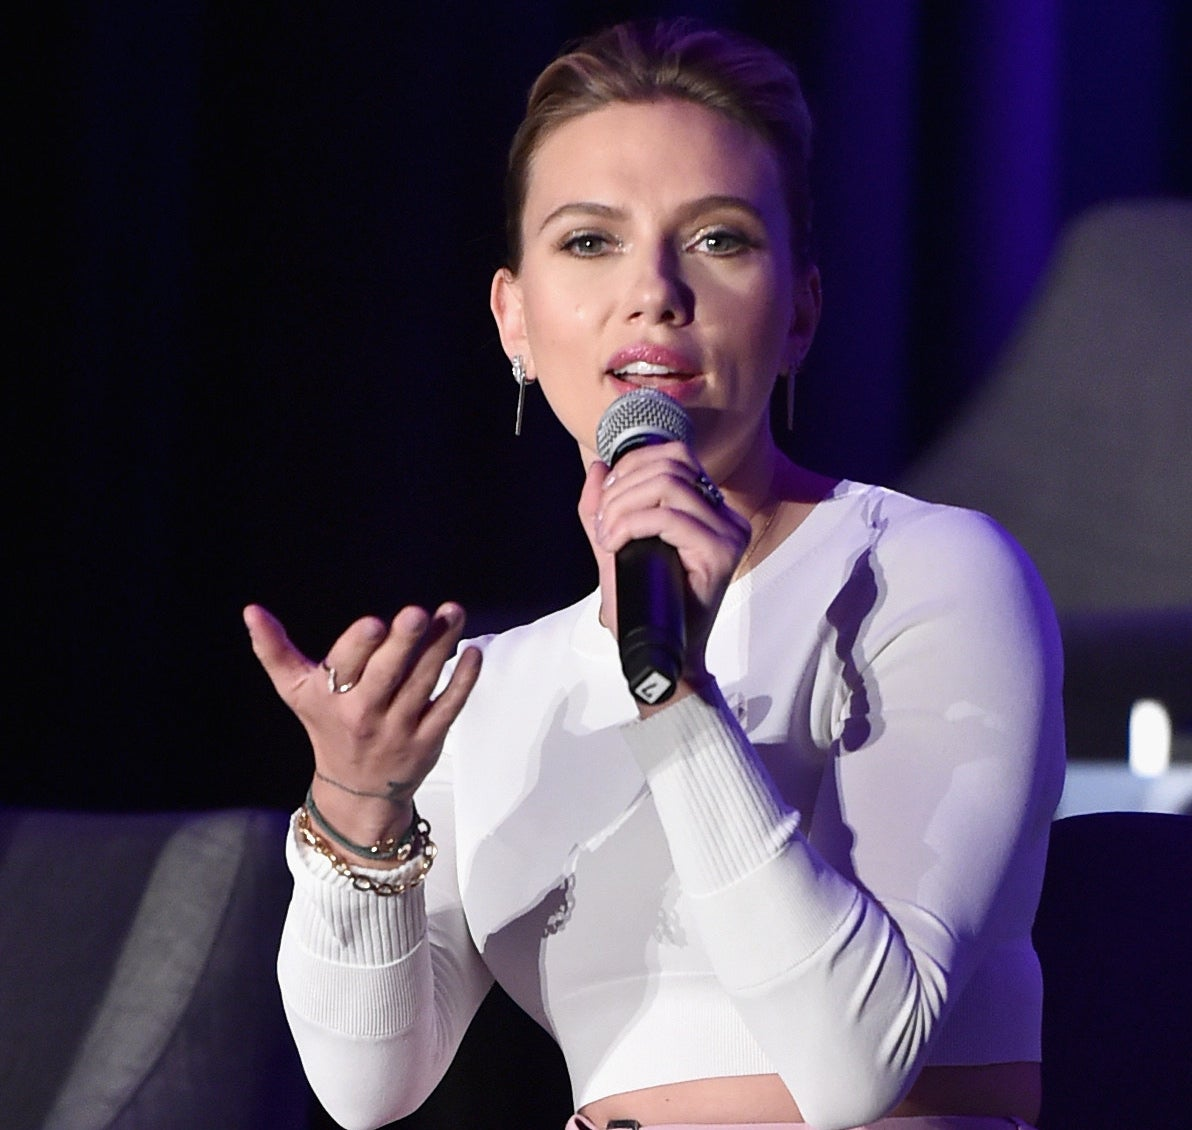 Scarlett speaks onstage at a press conference